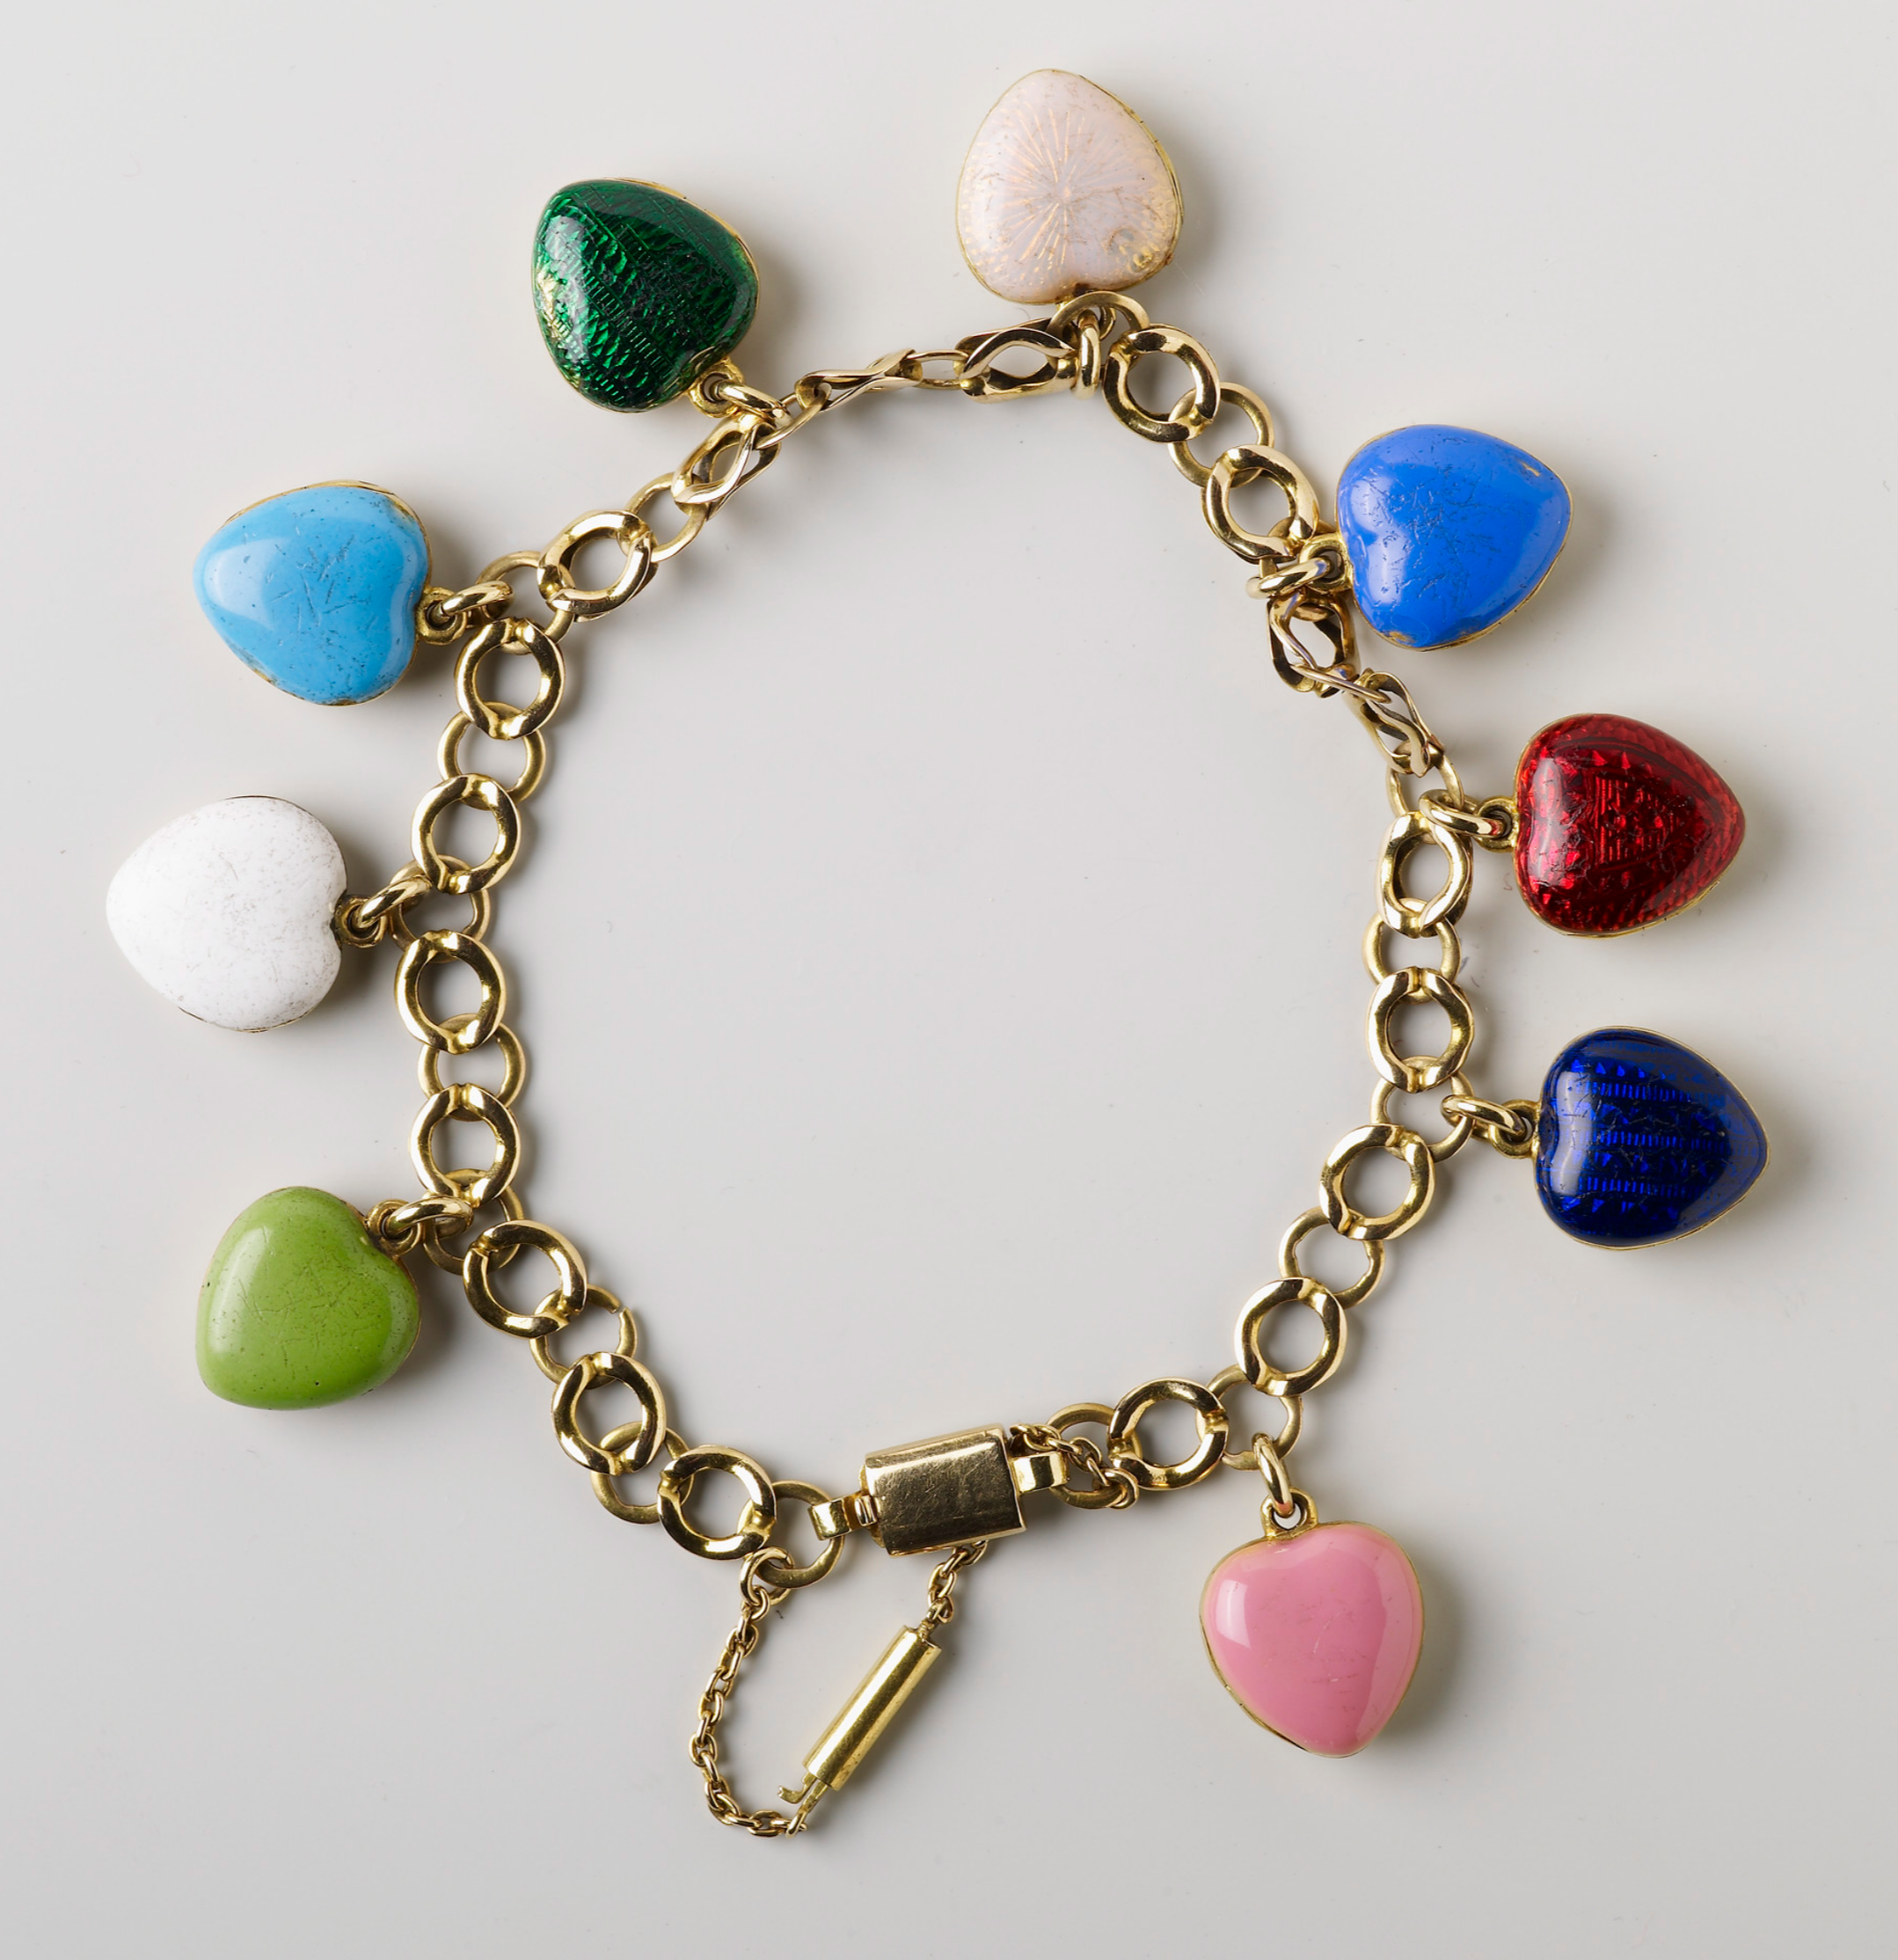 Queen Victoria's bracelet with lockets for each child: pink for Princess Victoria, turquoise blue for Albert, red for Princess Alice, dark blue for Alfred, translucent white for Helena, dark green for Louise, mid blue for Arthur, opaque white for Leopold and light green for Beatrice